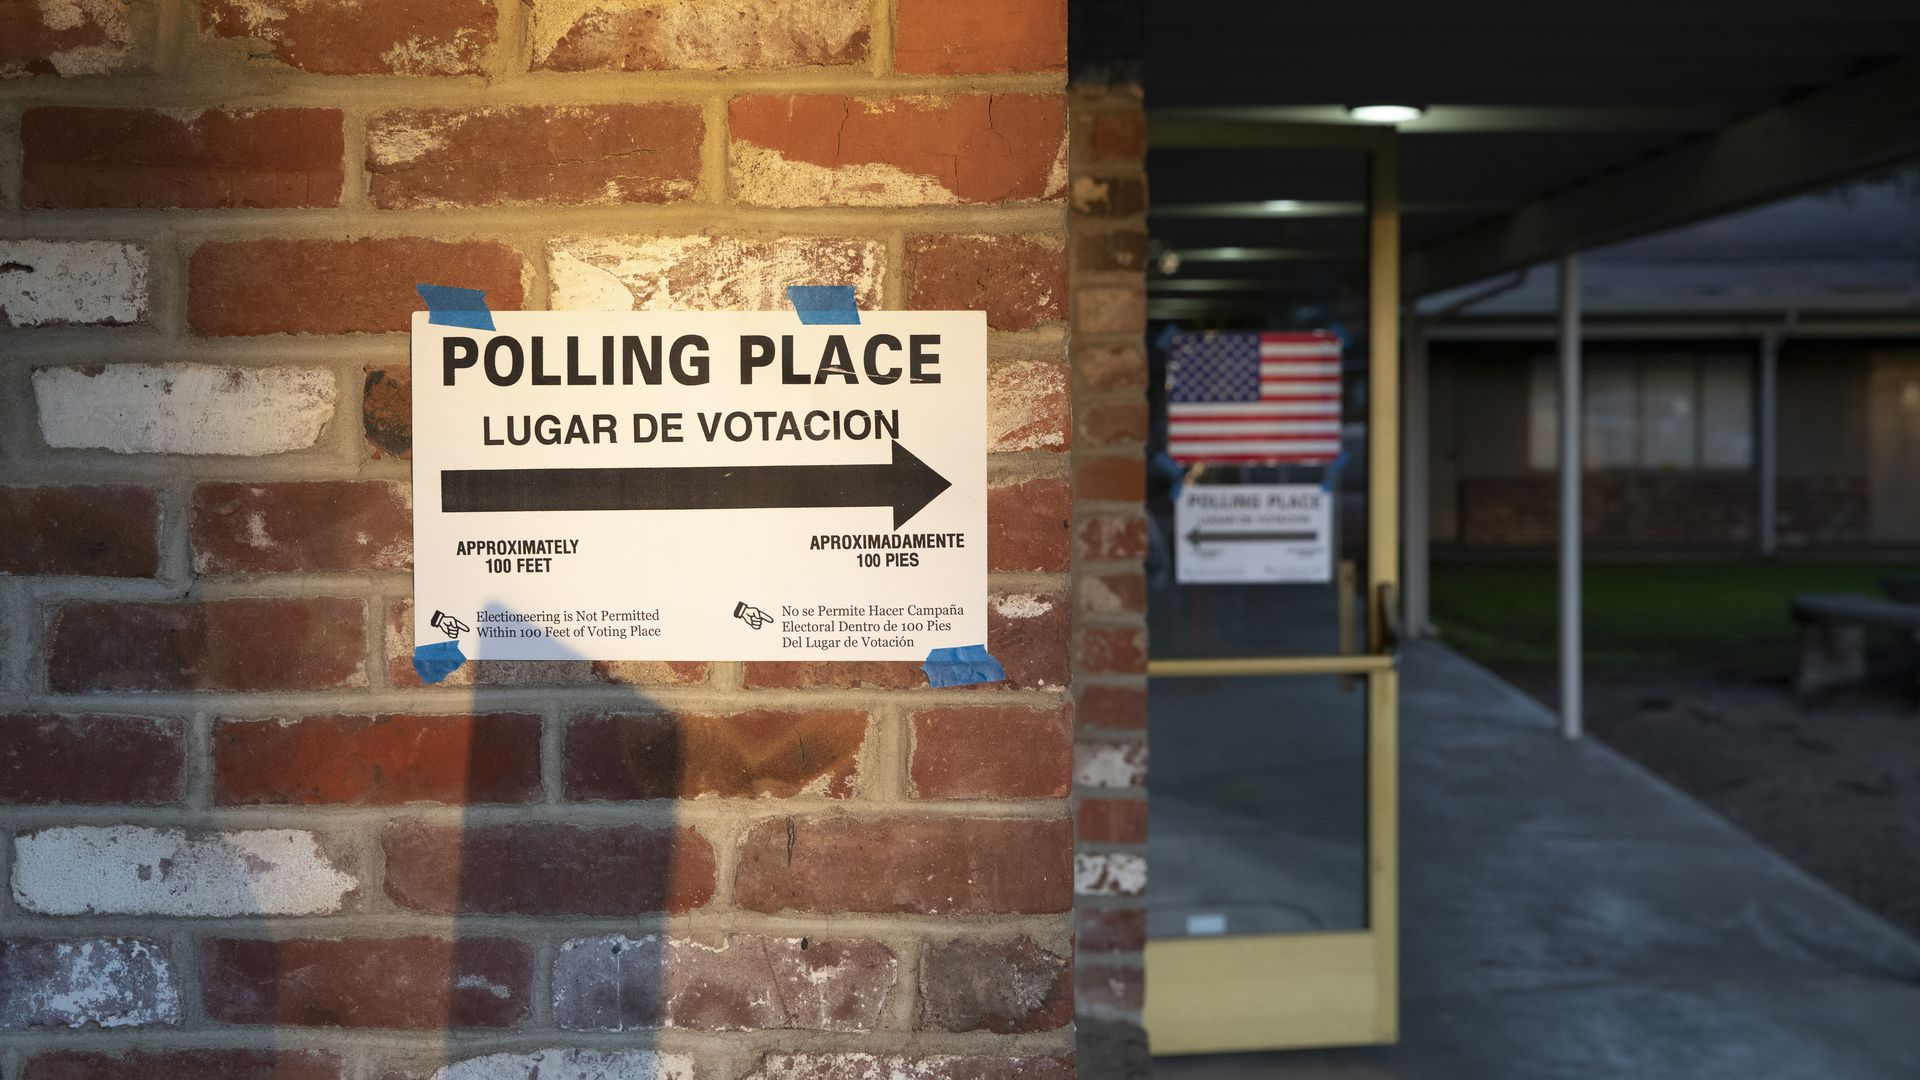 A polling place in California.